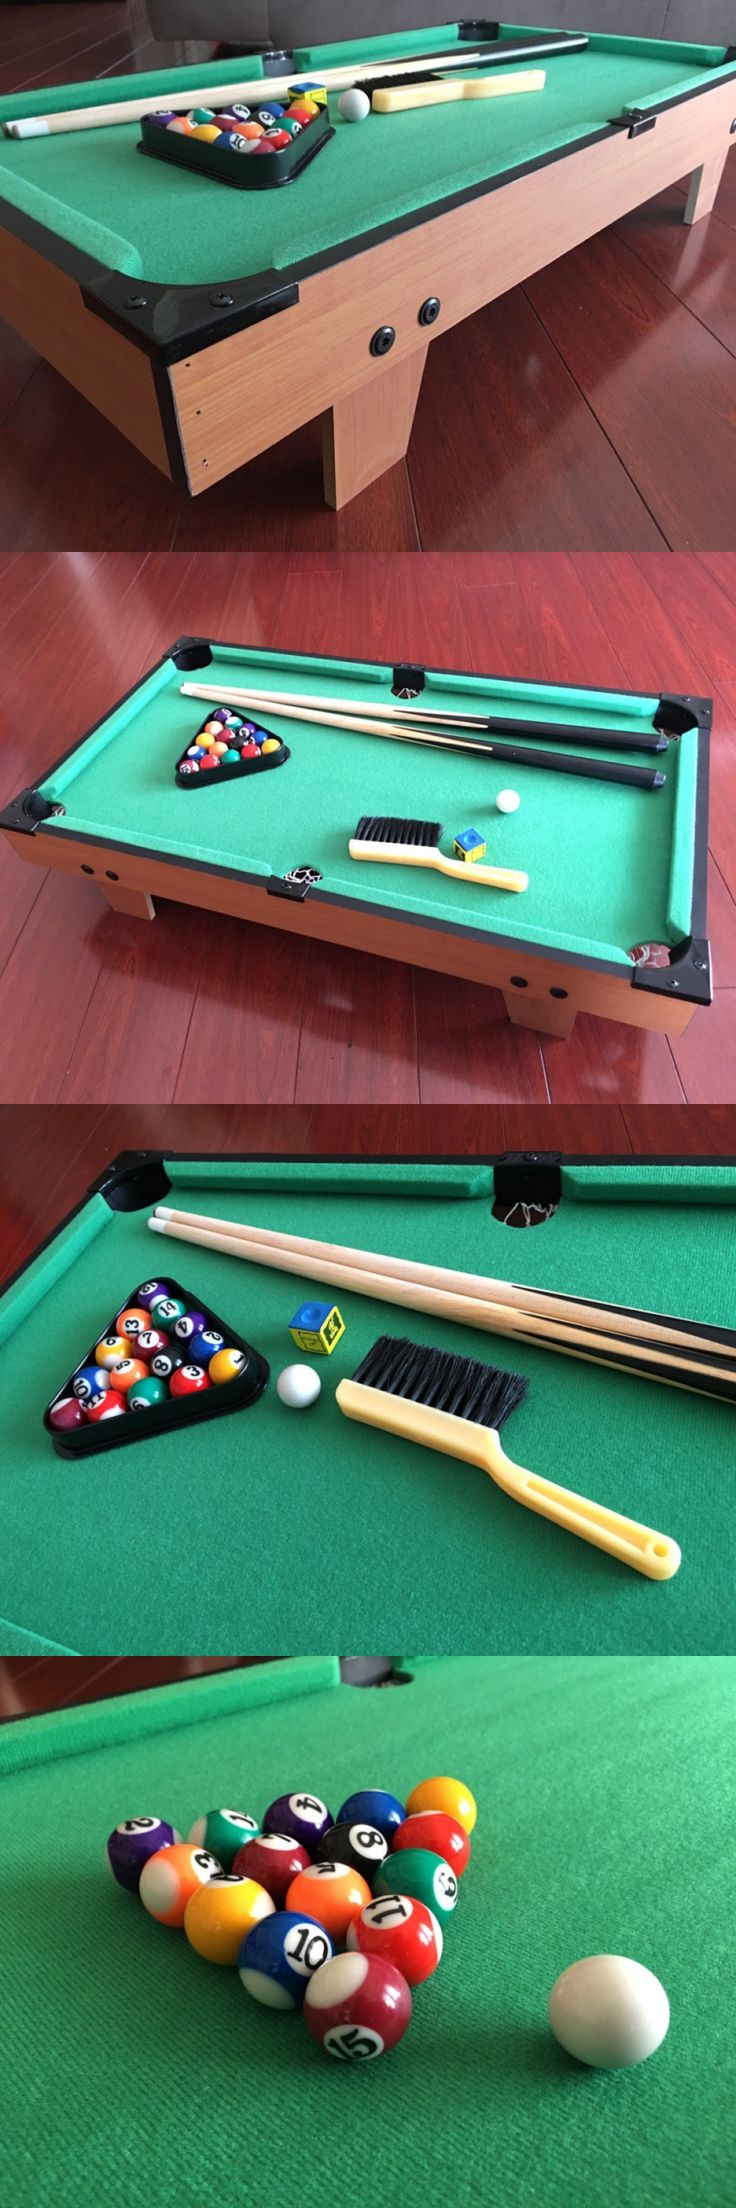 Pool table legs accessories for sale - Tables 21213 Table Top Pool Table Cue Balls Brush Accessories Billard Tabletop Indoor Games Buy It Now Only 79 3 On Ebay